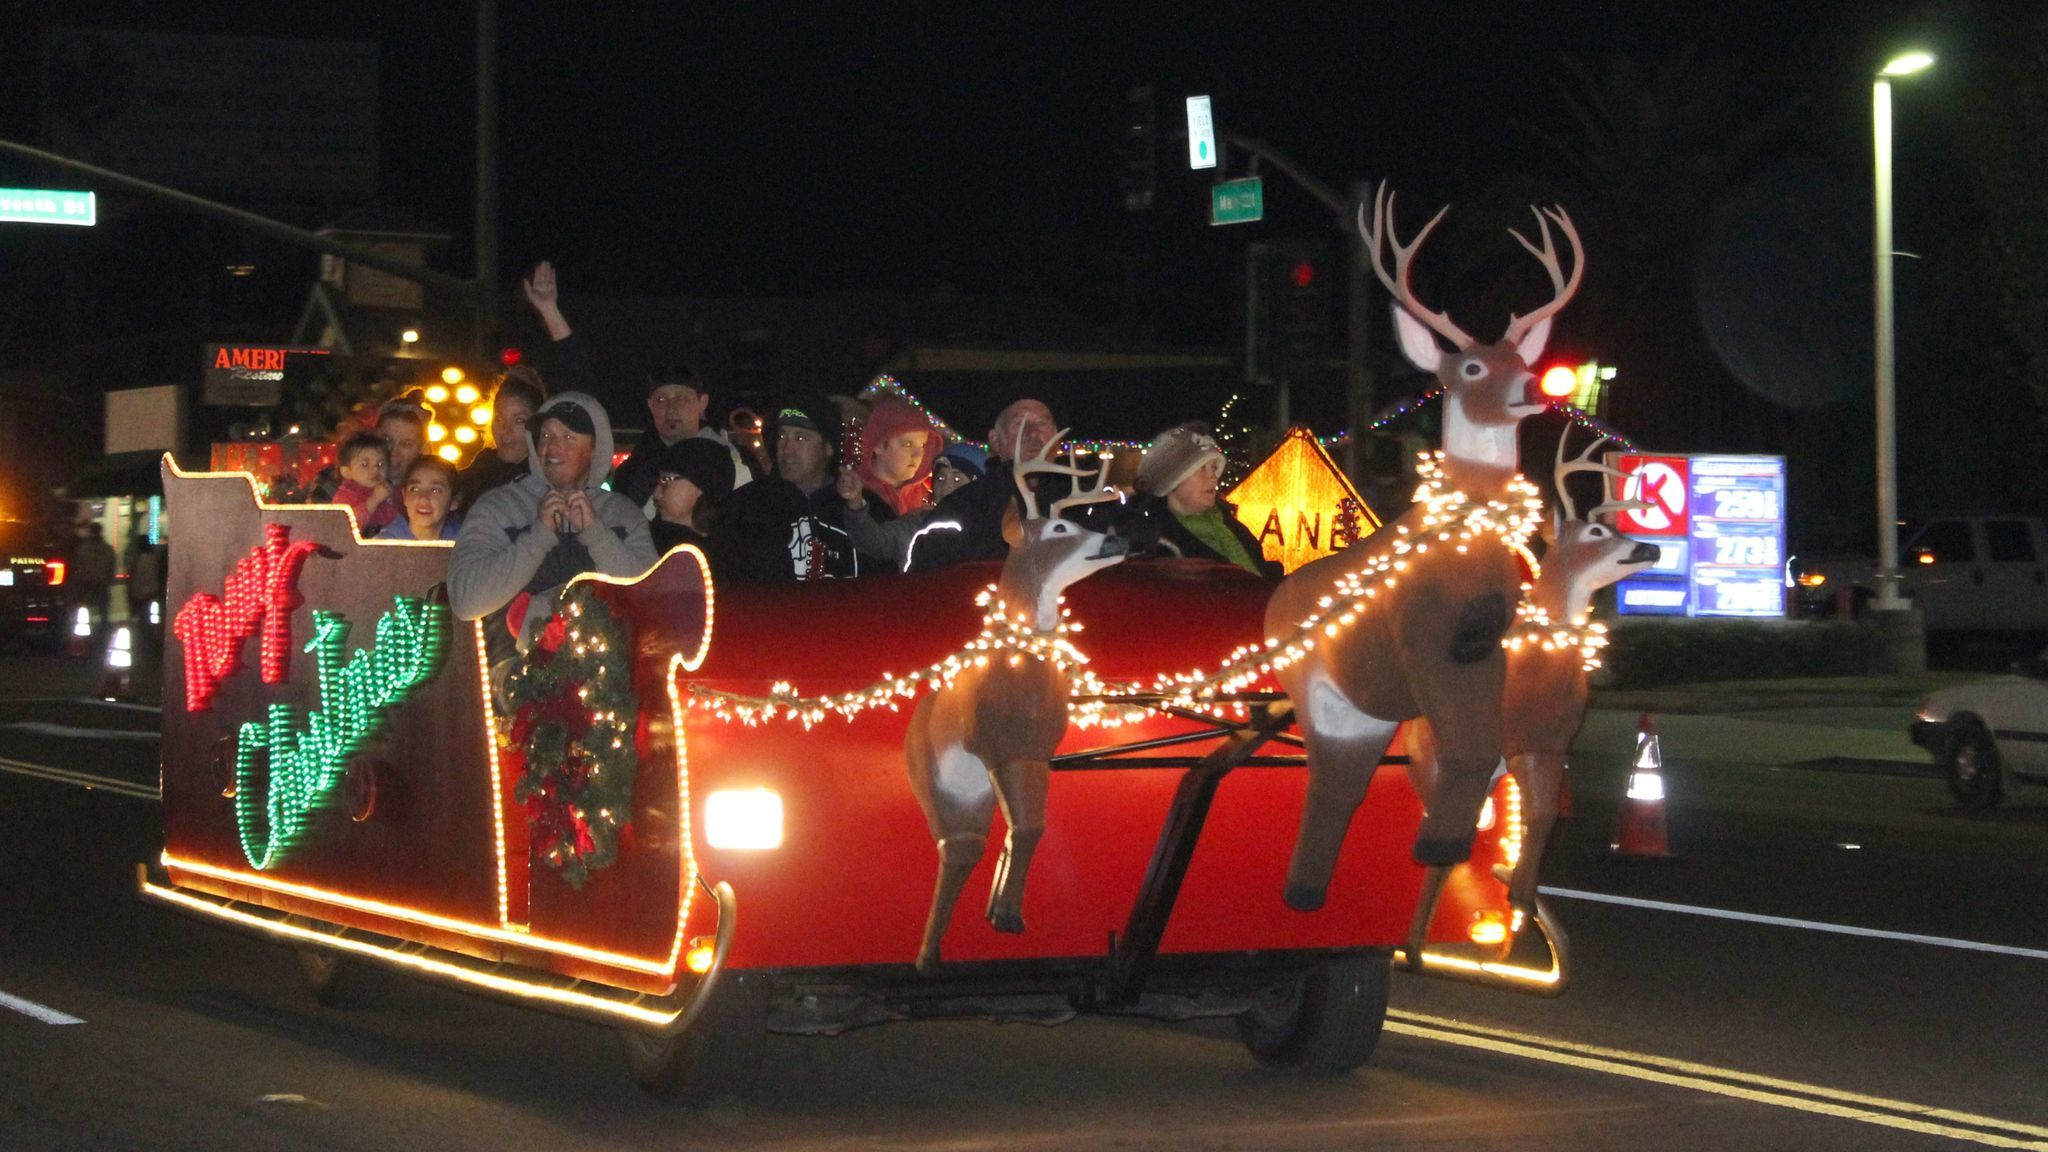 Judy and Bill Bryant provide free sleigh rides through Old Town Ramona.